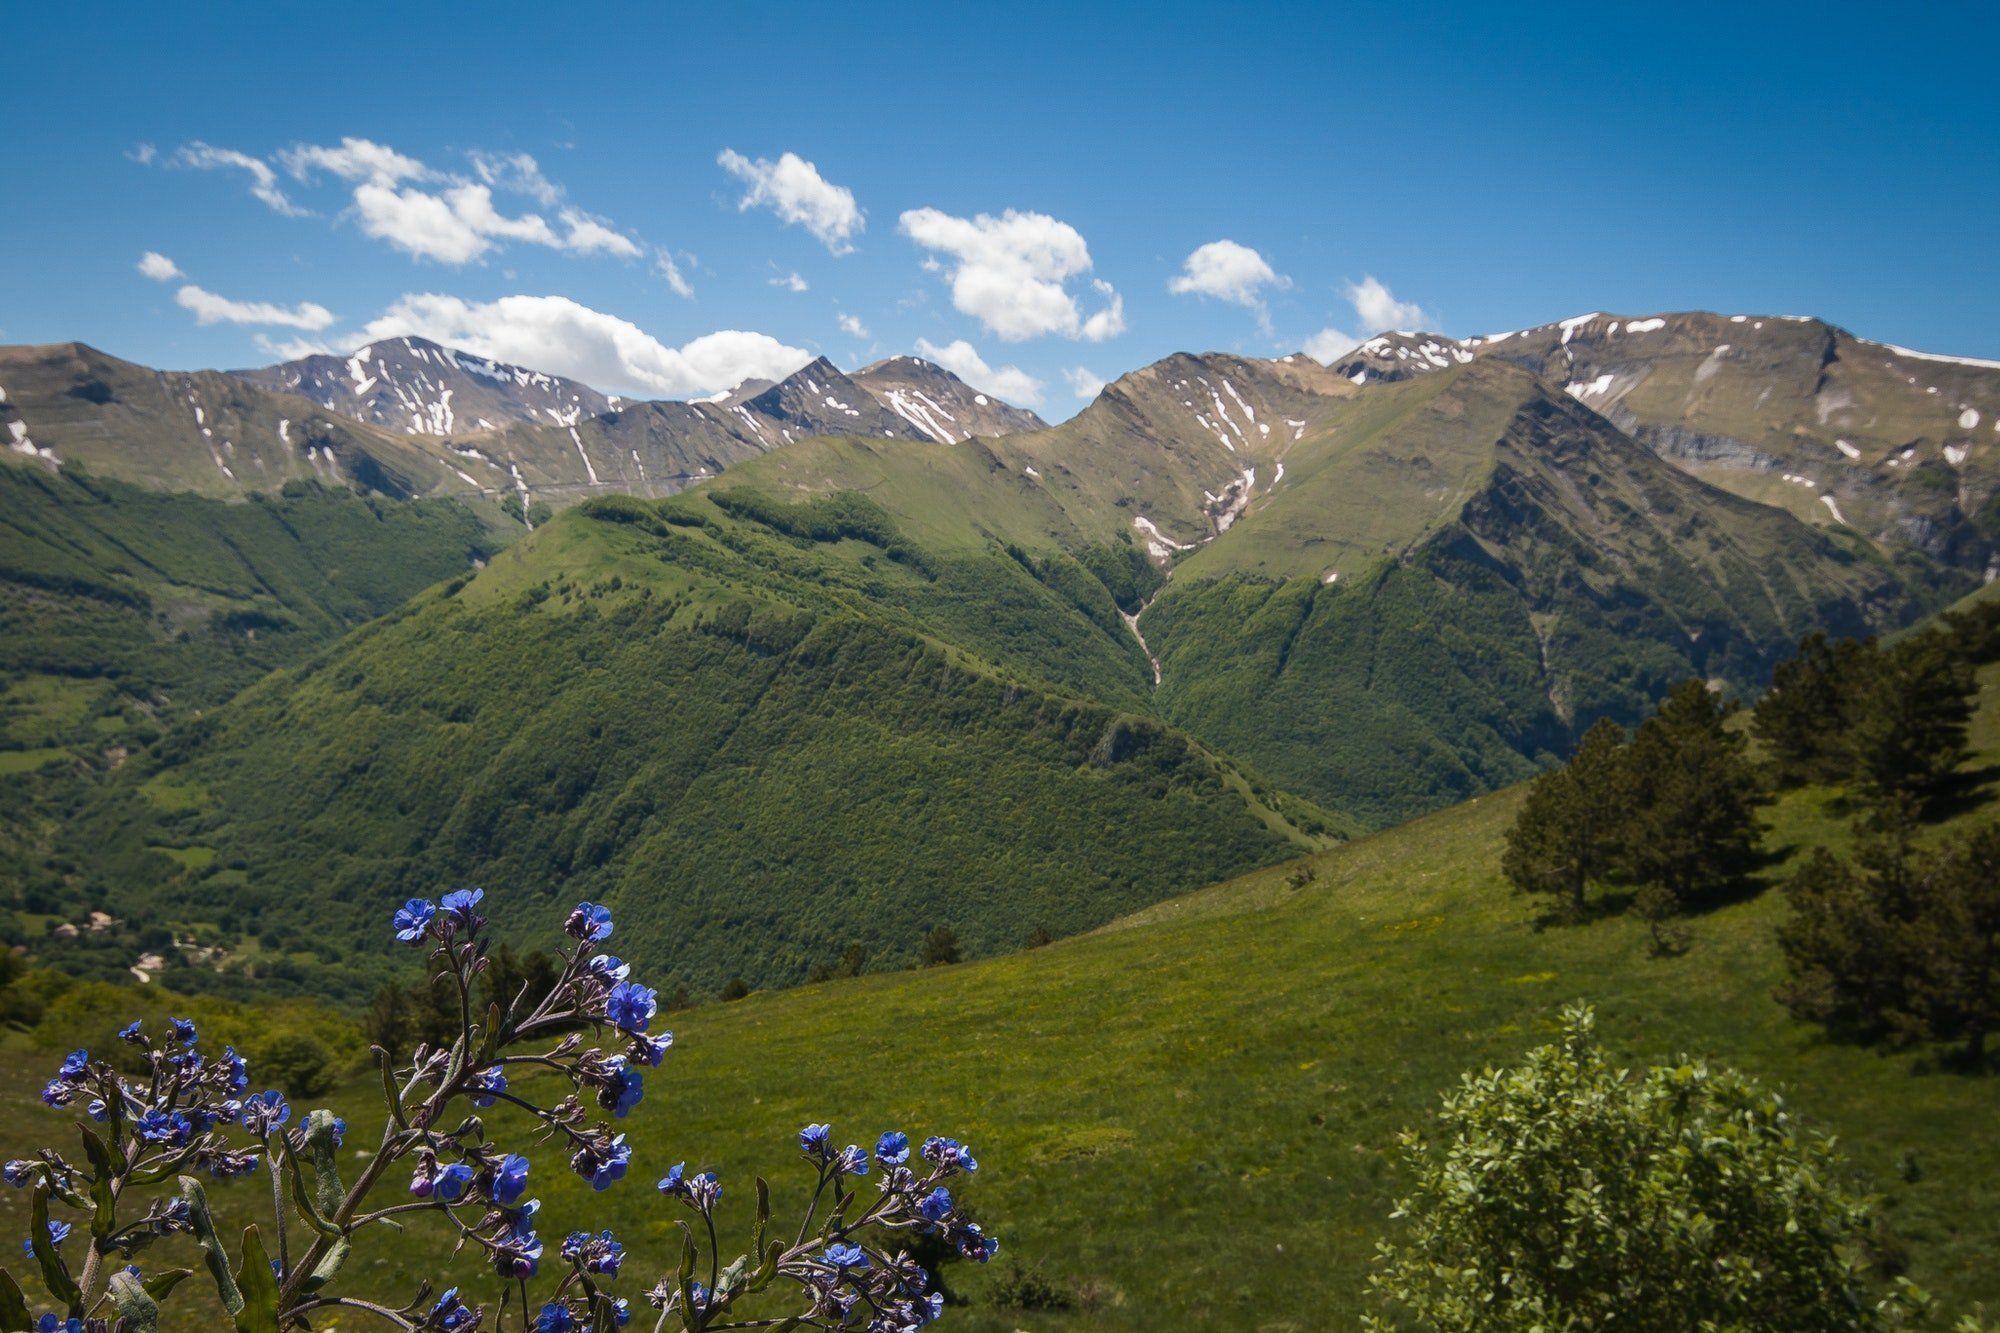 Wild blue flowers in the National park of Monti Sibillini